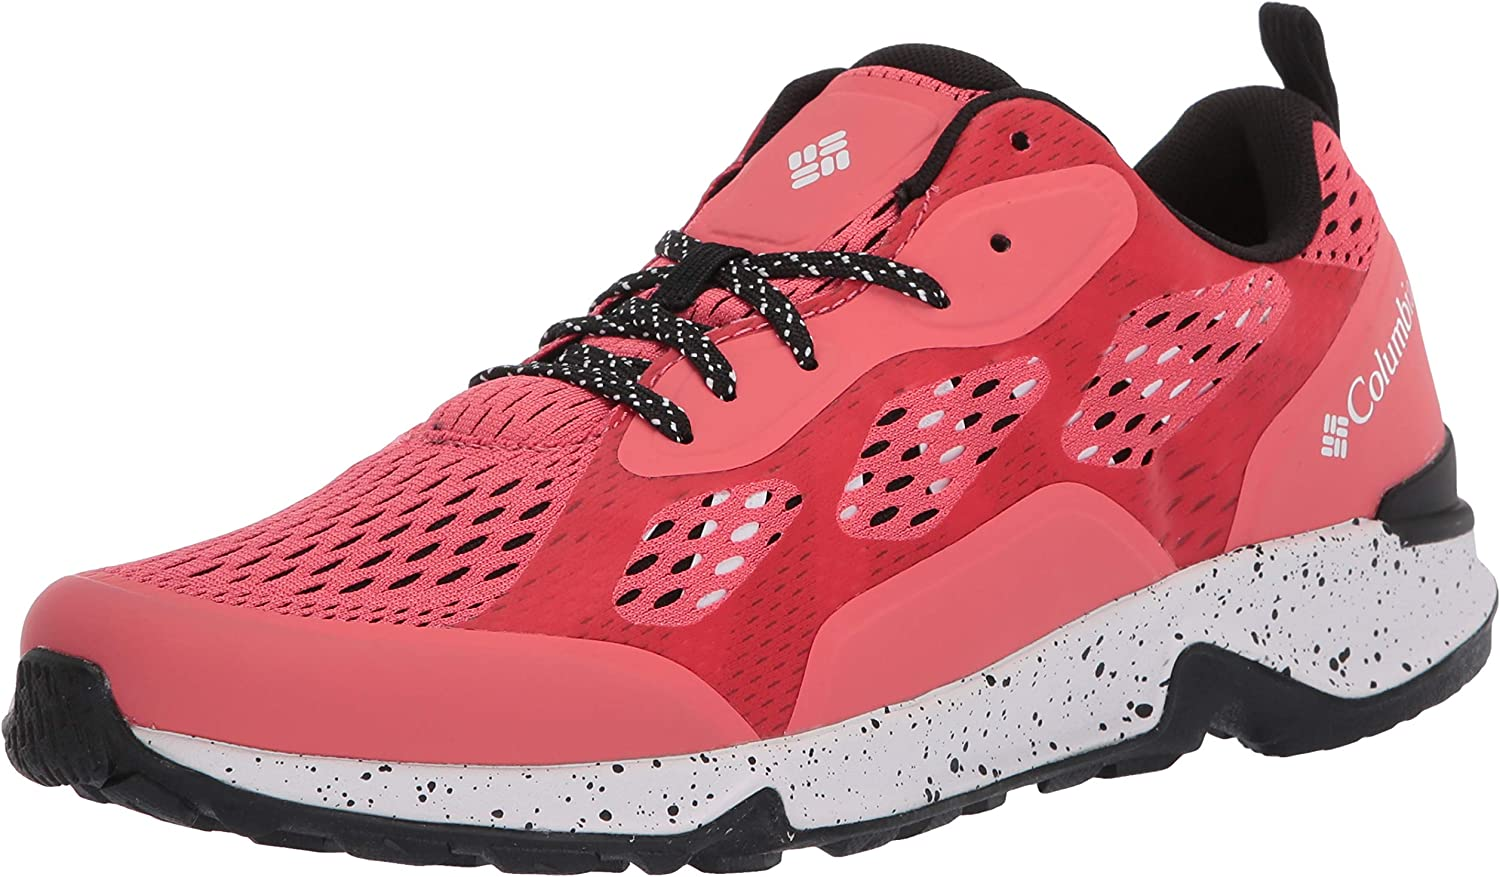 Columbia Rare Women's Vitesse Hiking Shoe Free shipping anywhere in the nation